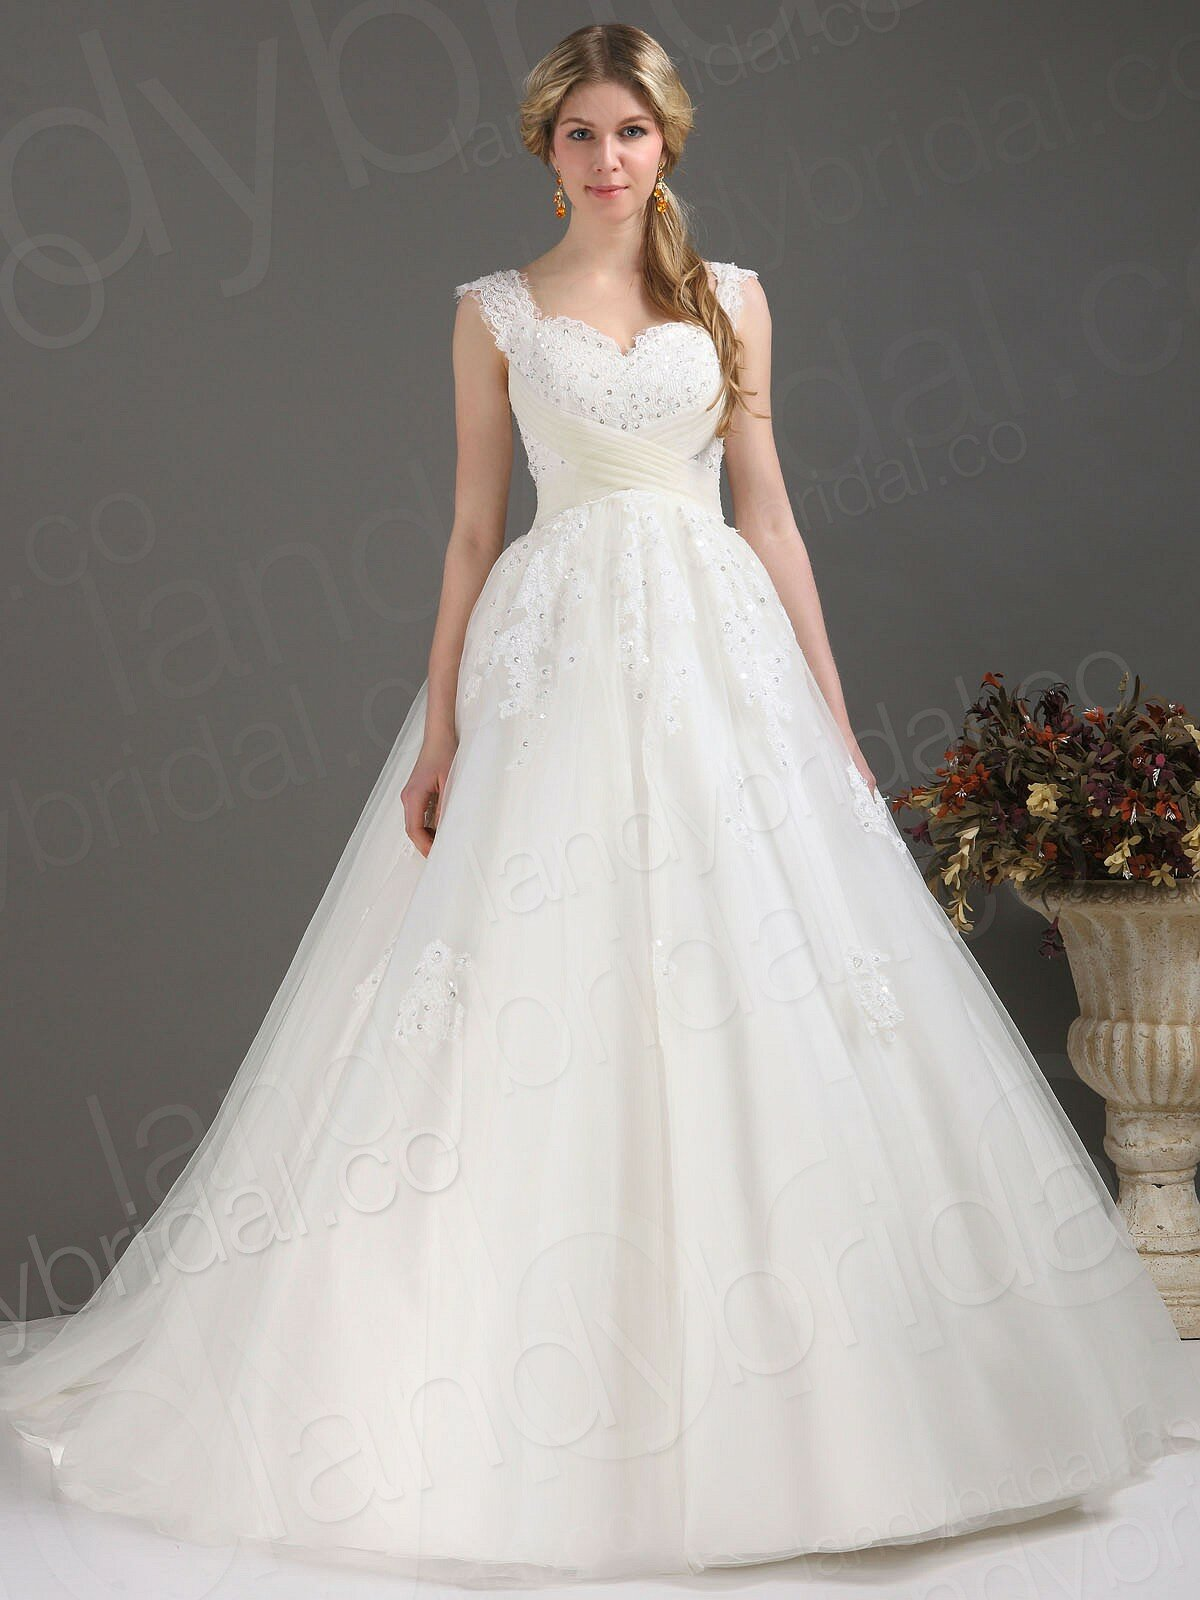 A line wedding dresses with straps: Pictures ideas, Guide to ...